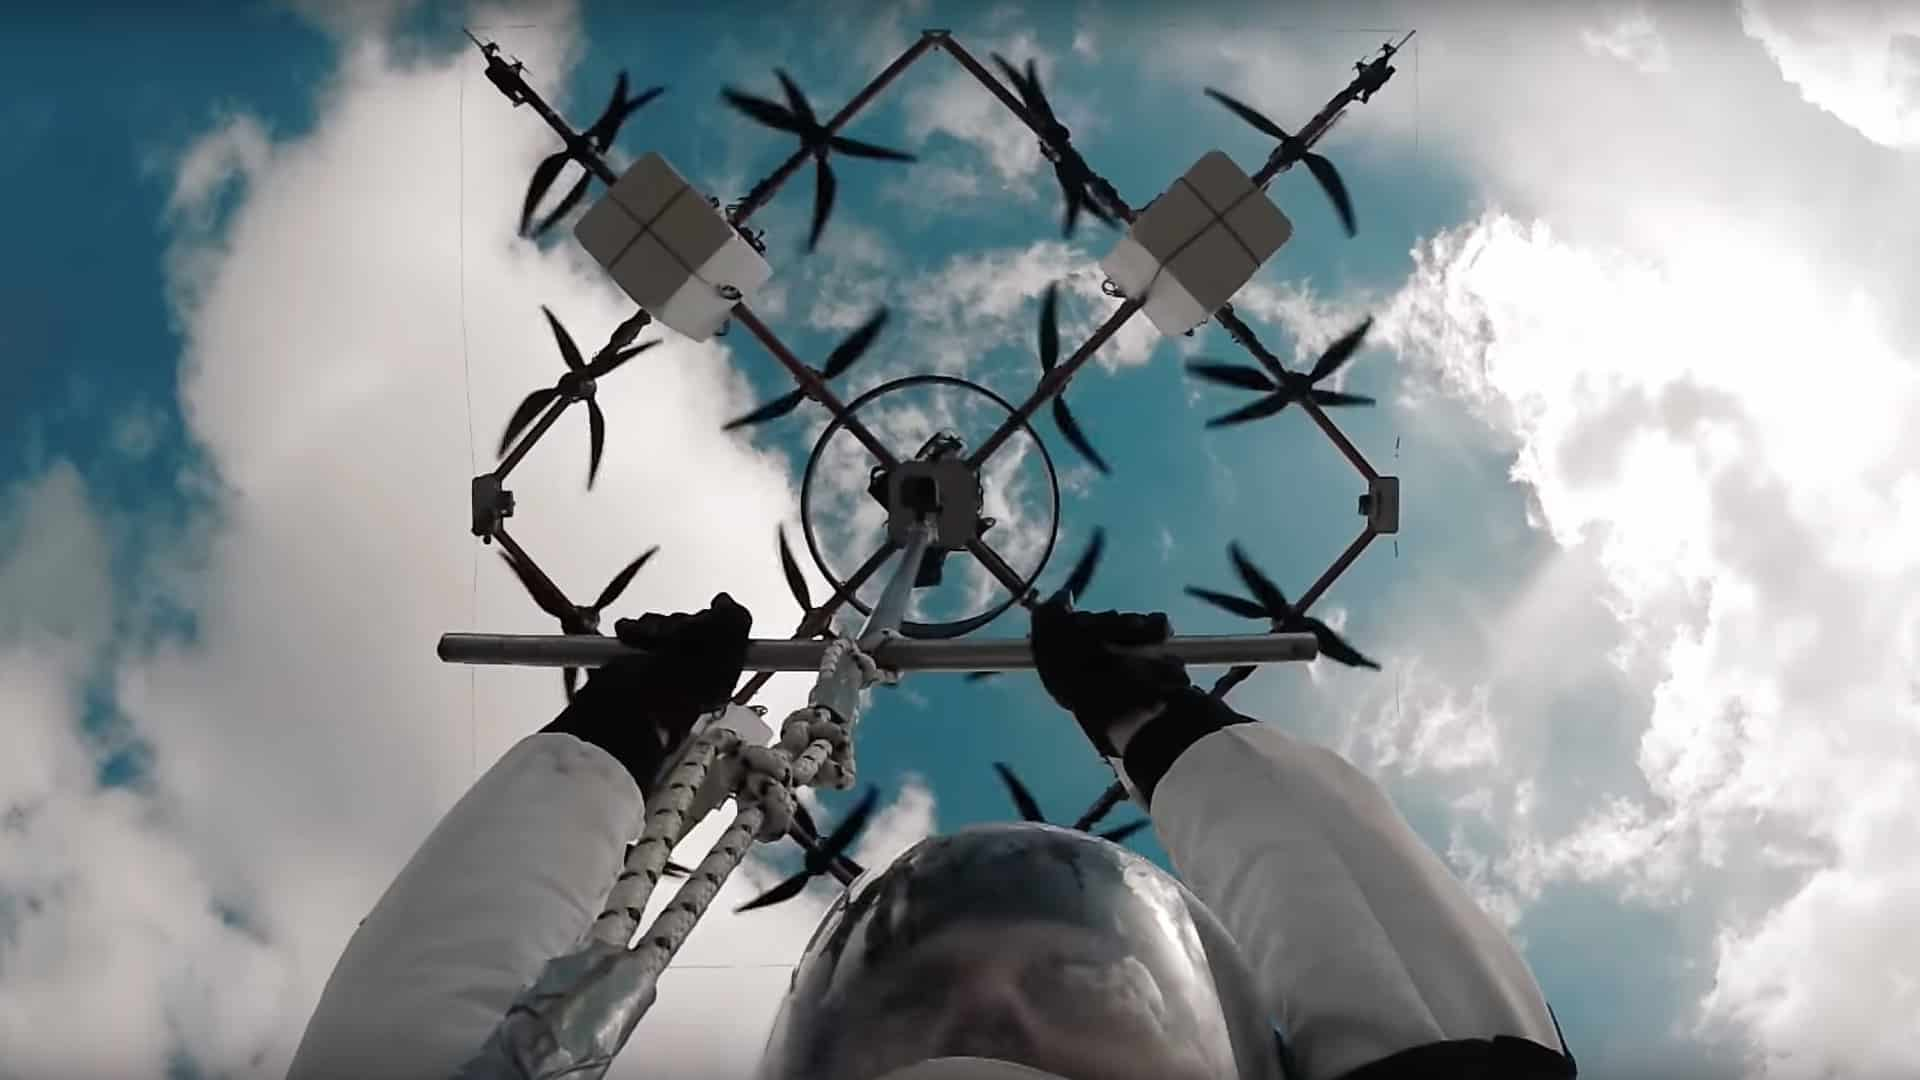 worlds first drone base jump